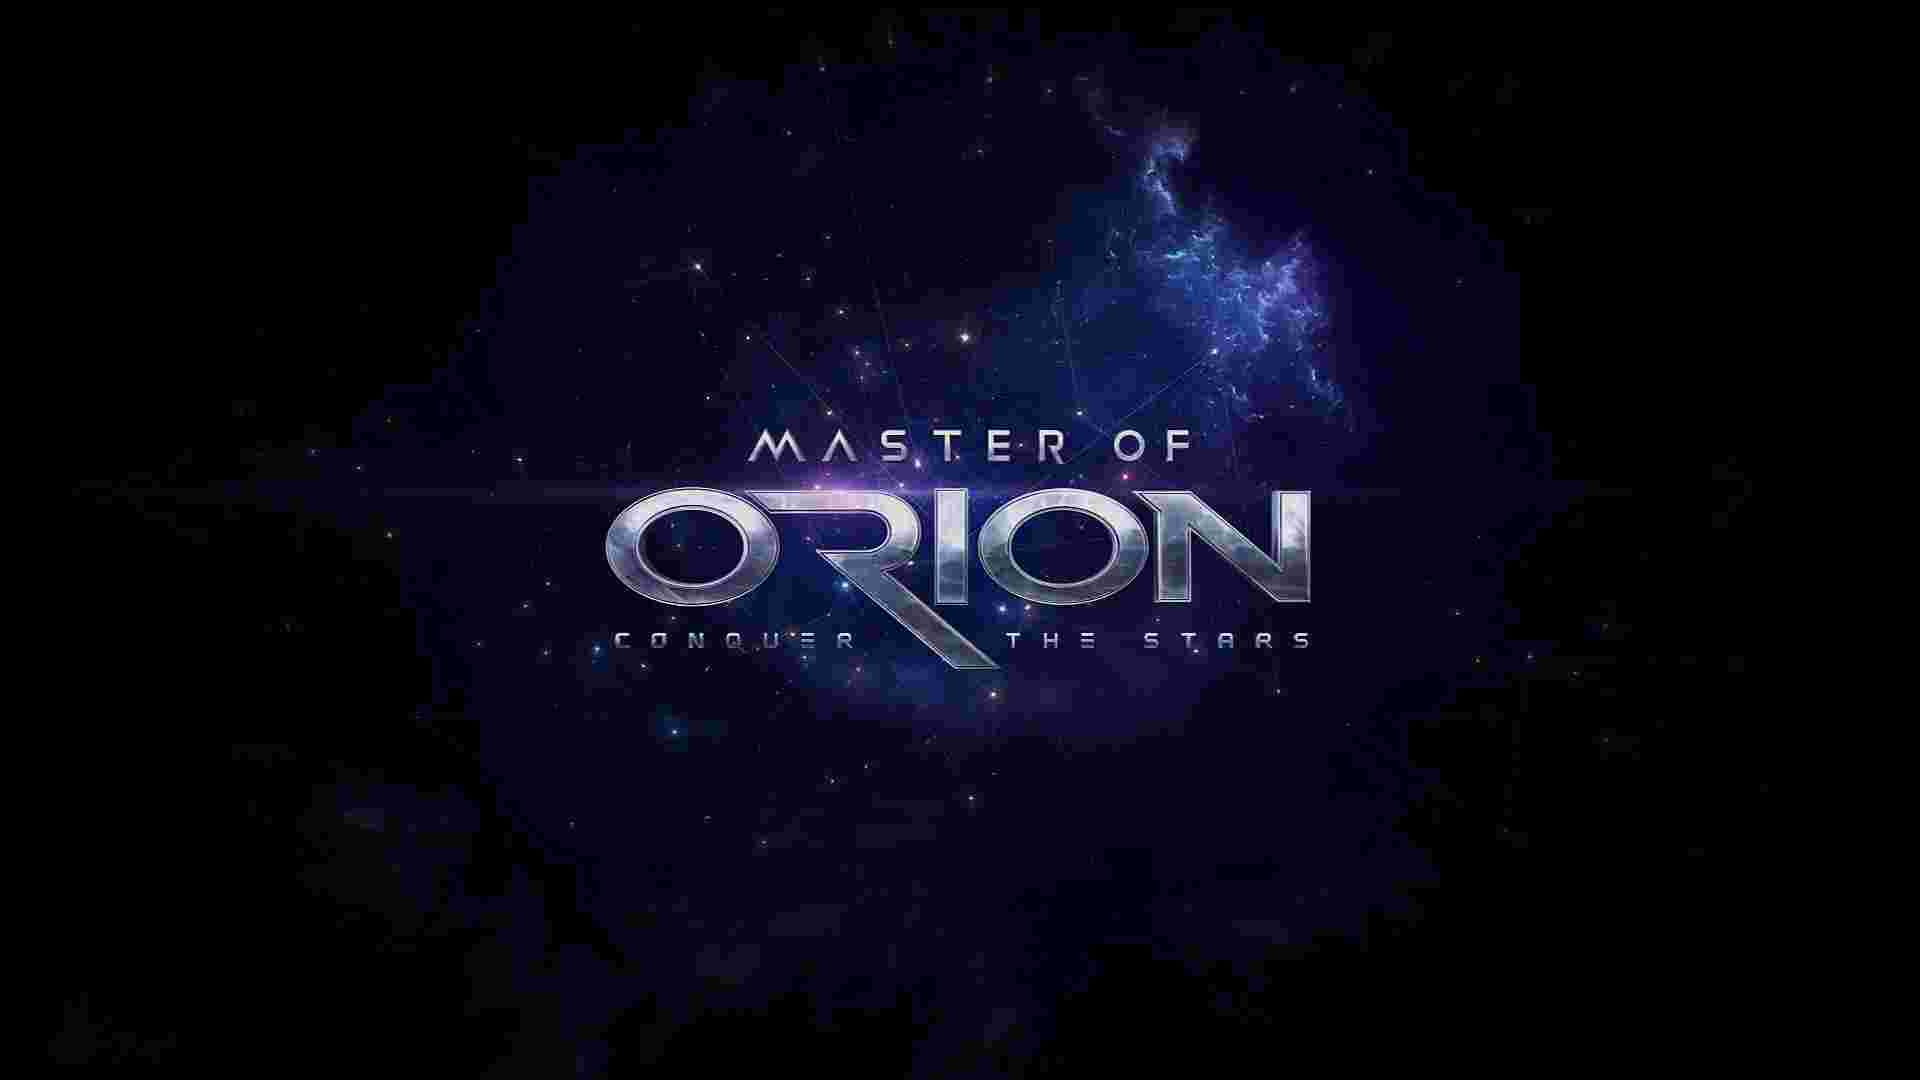 Master of Orion wargaming